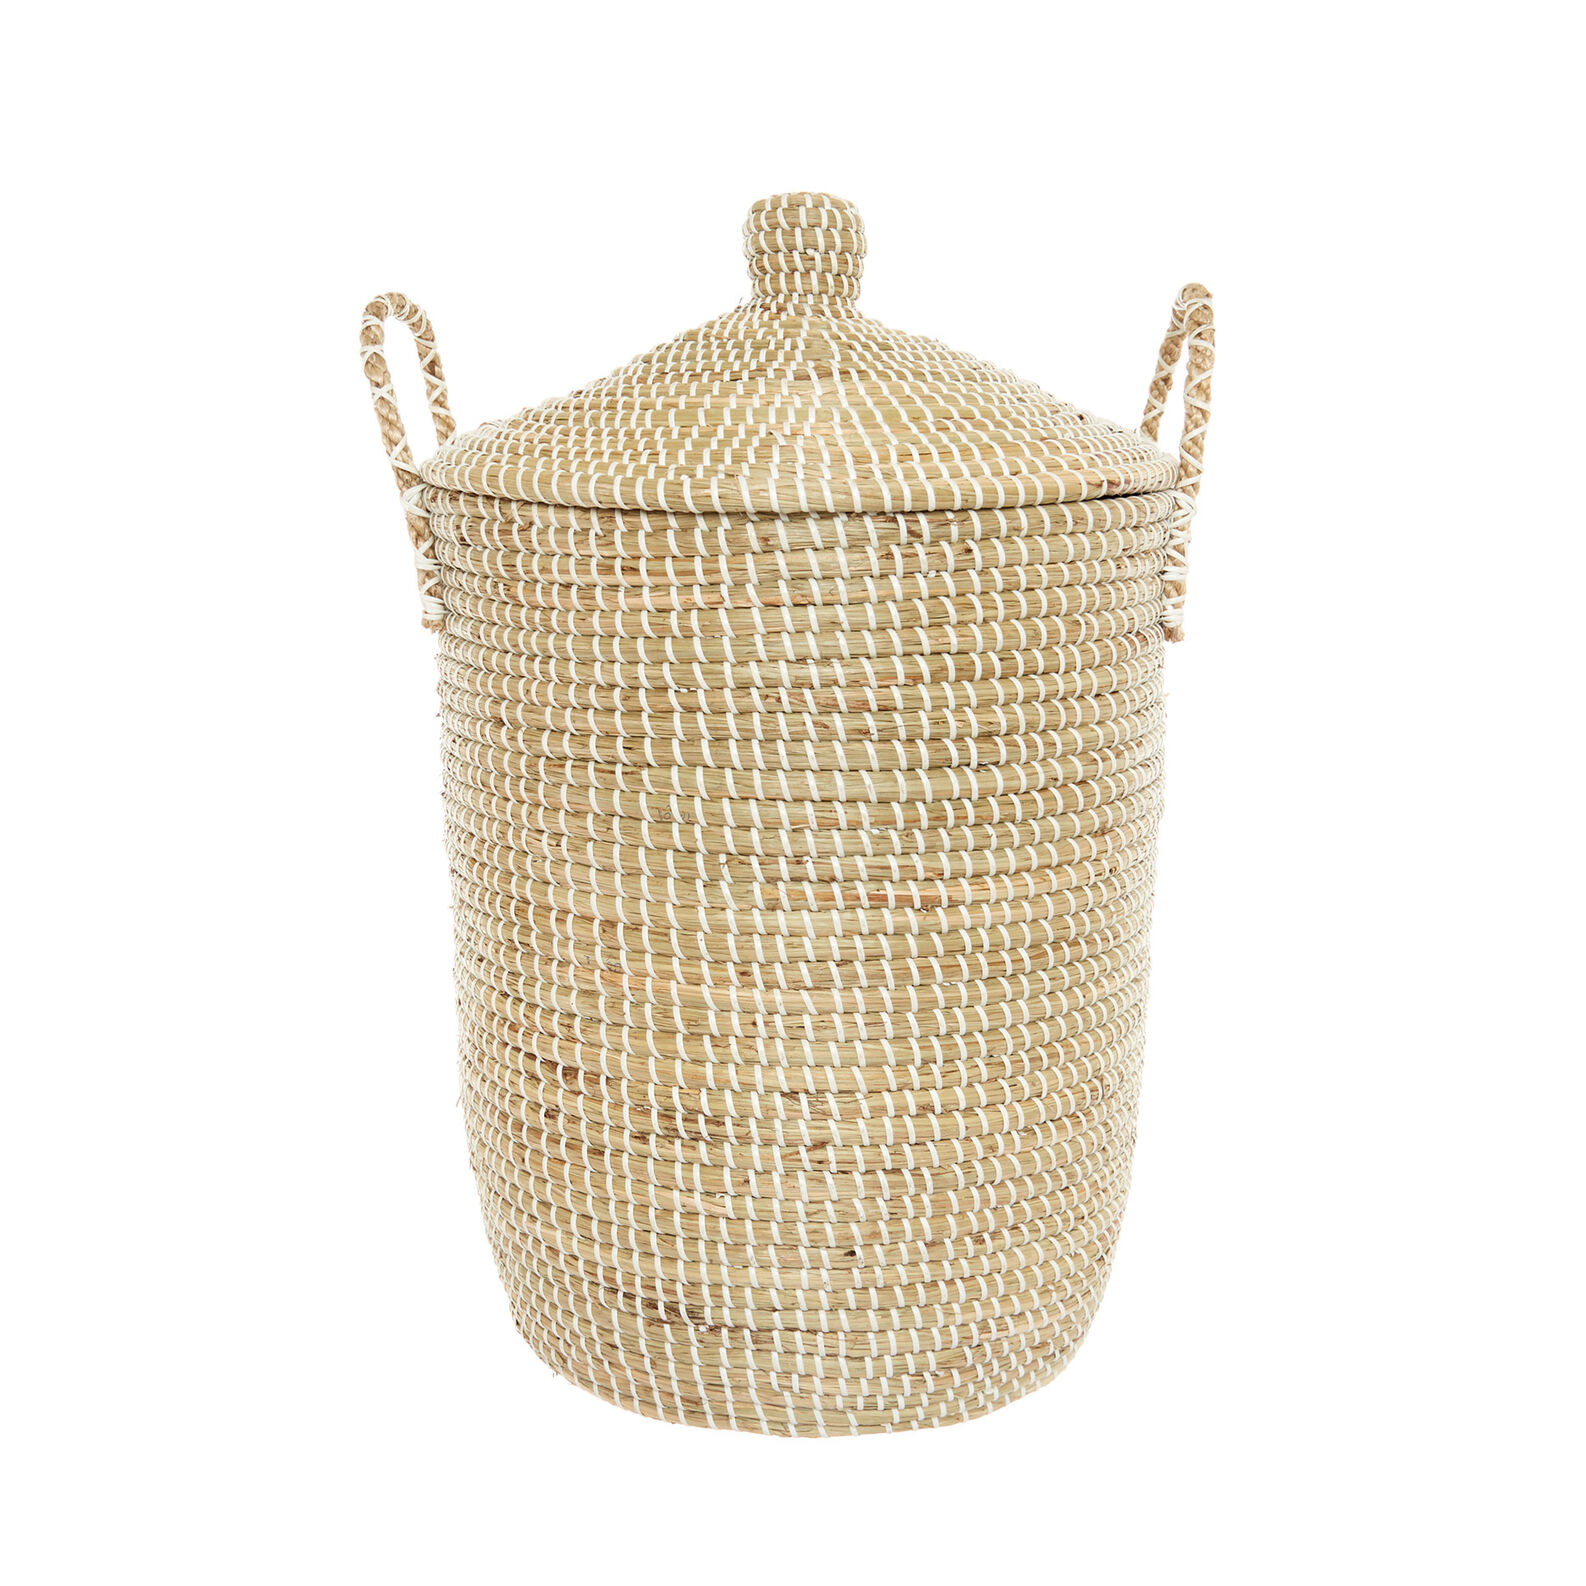 Handmade seagrass laundry basket